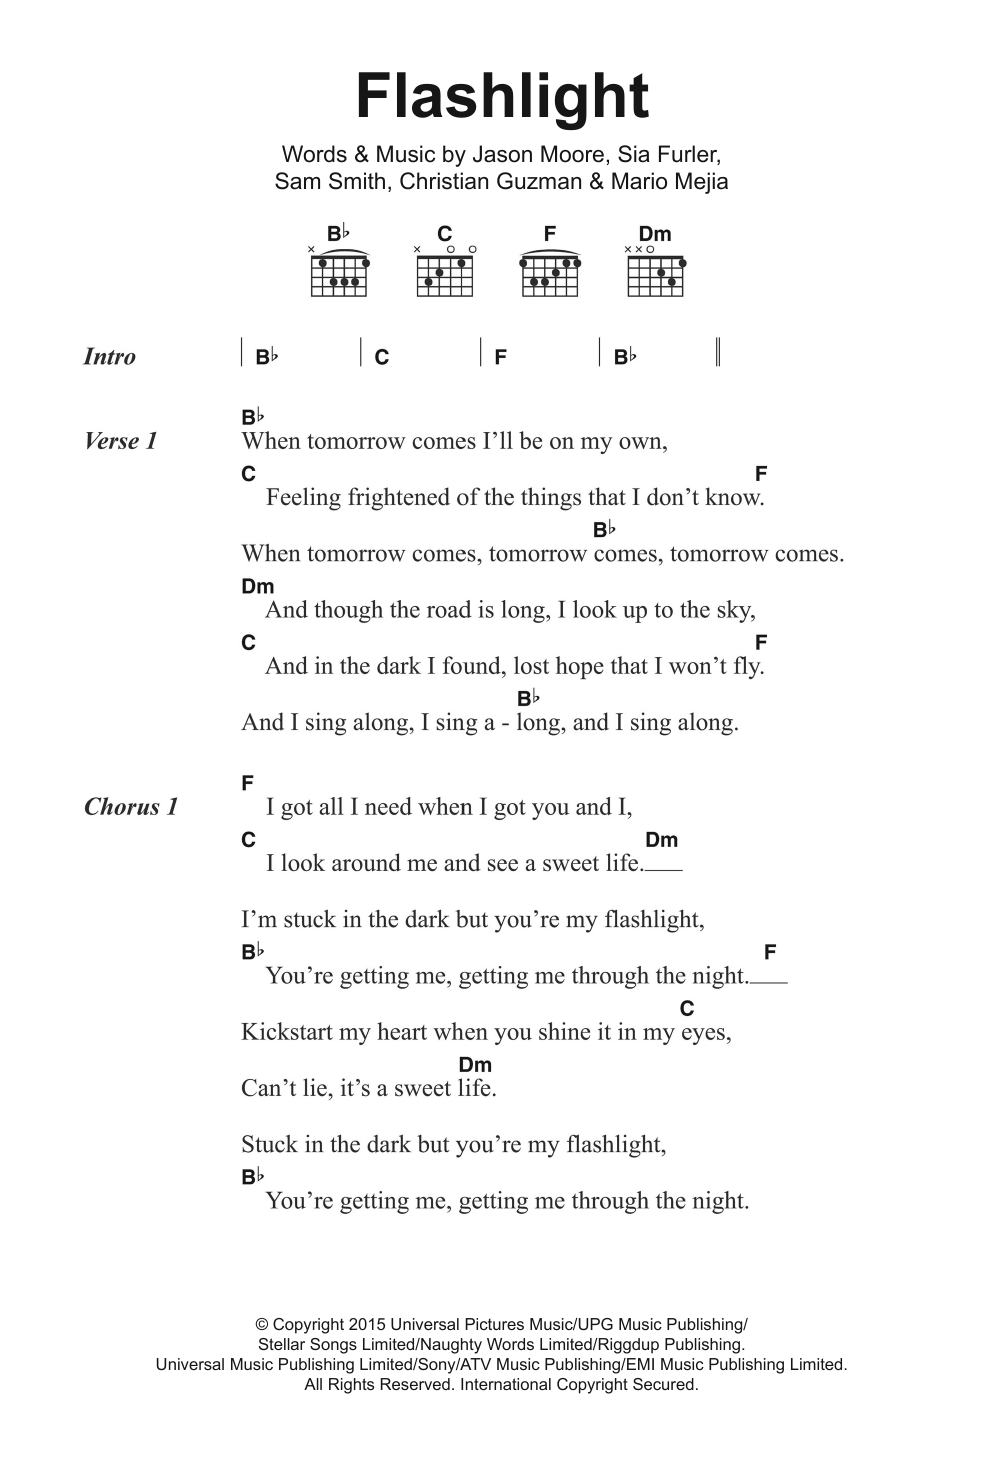 Flashlight Sheet Music